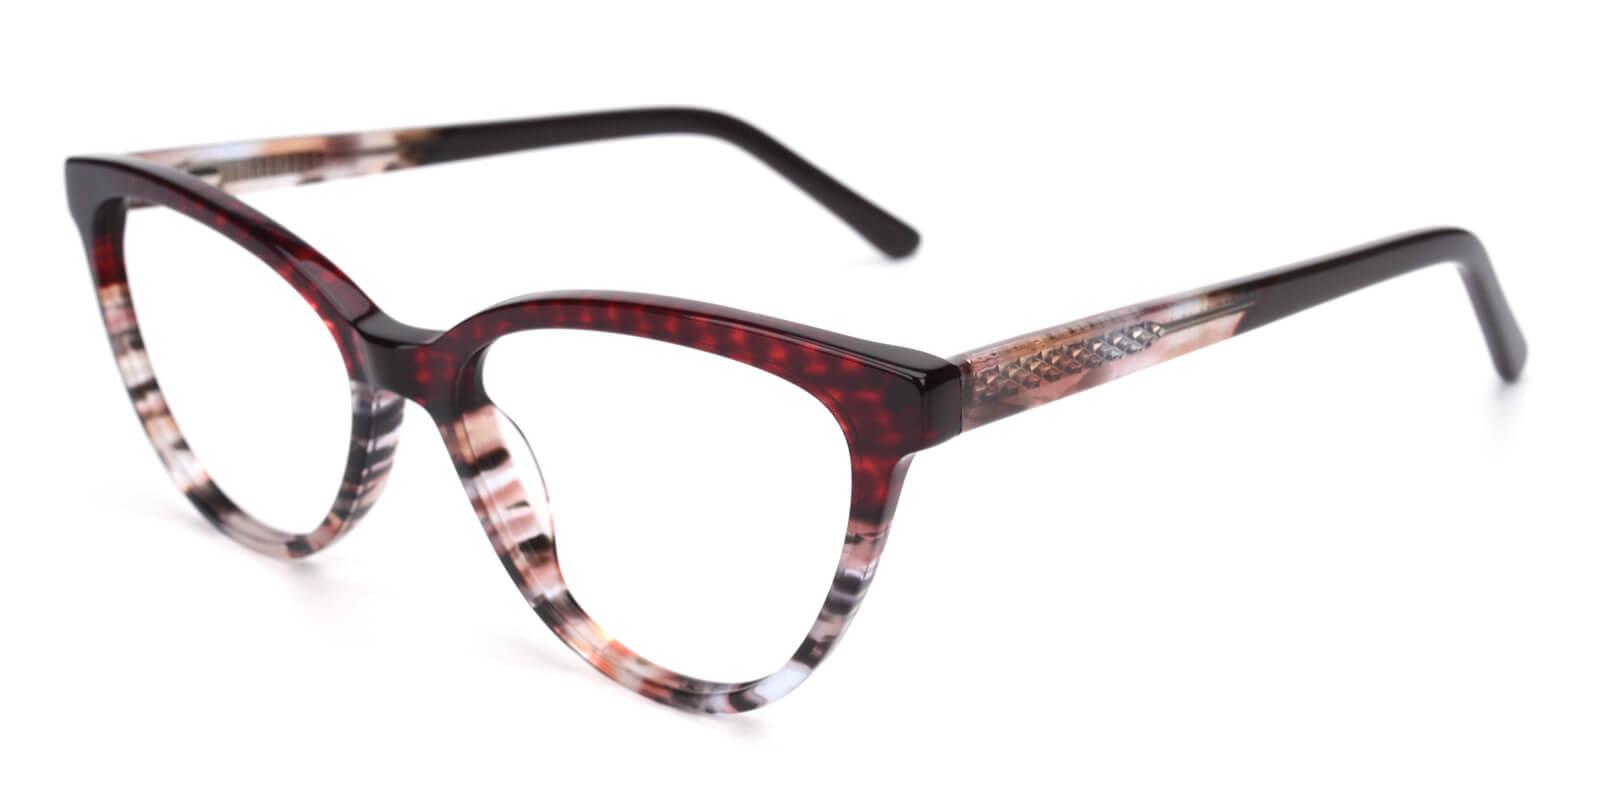 Daphnely-Red-Oval / Cat-Acetate-Eyeglasses-additional1